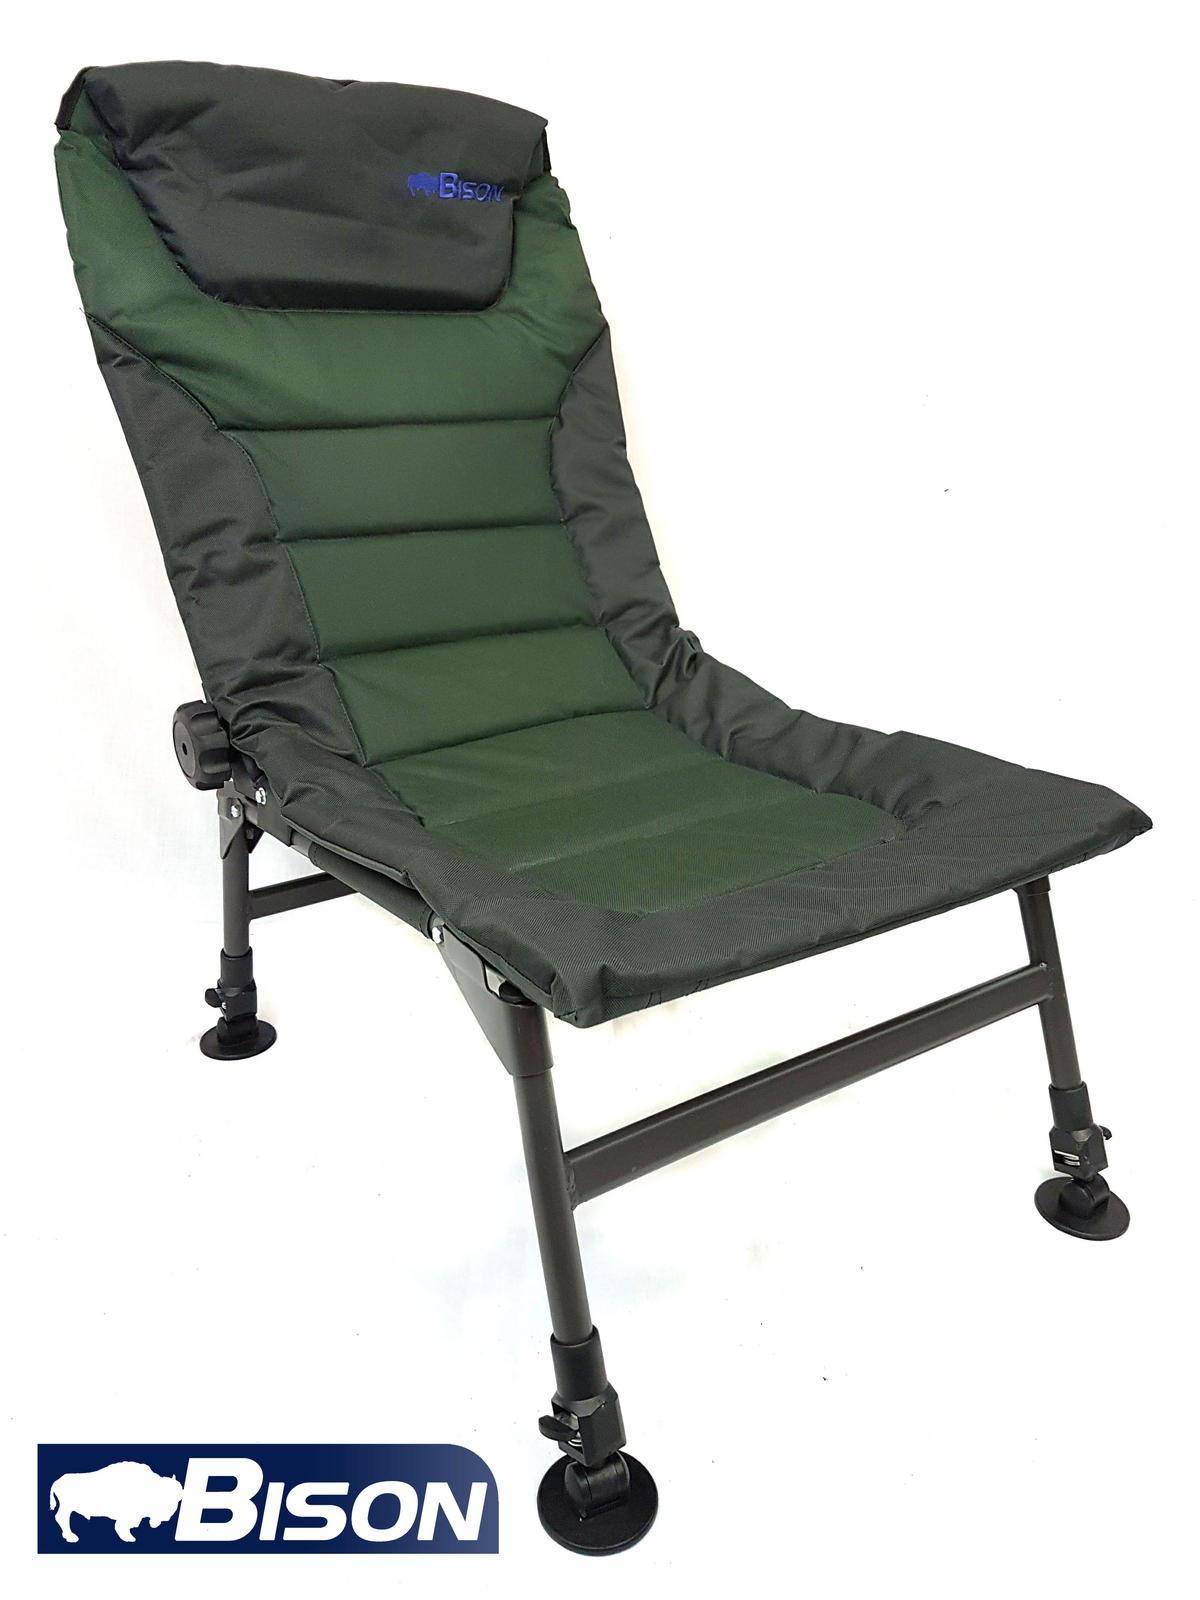 FISHING CHAIR ADJUSTABLE LEGS AND BACK RECLINER + FREE CARP CHAIR BAG